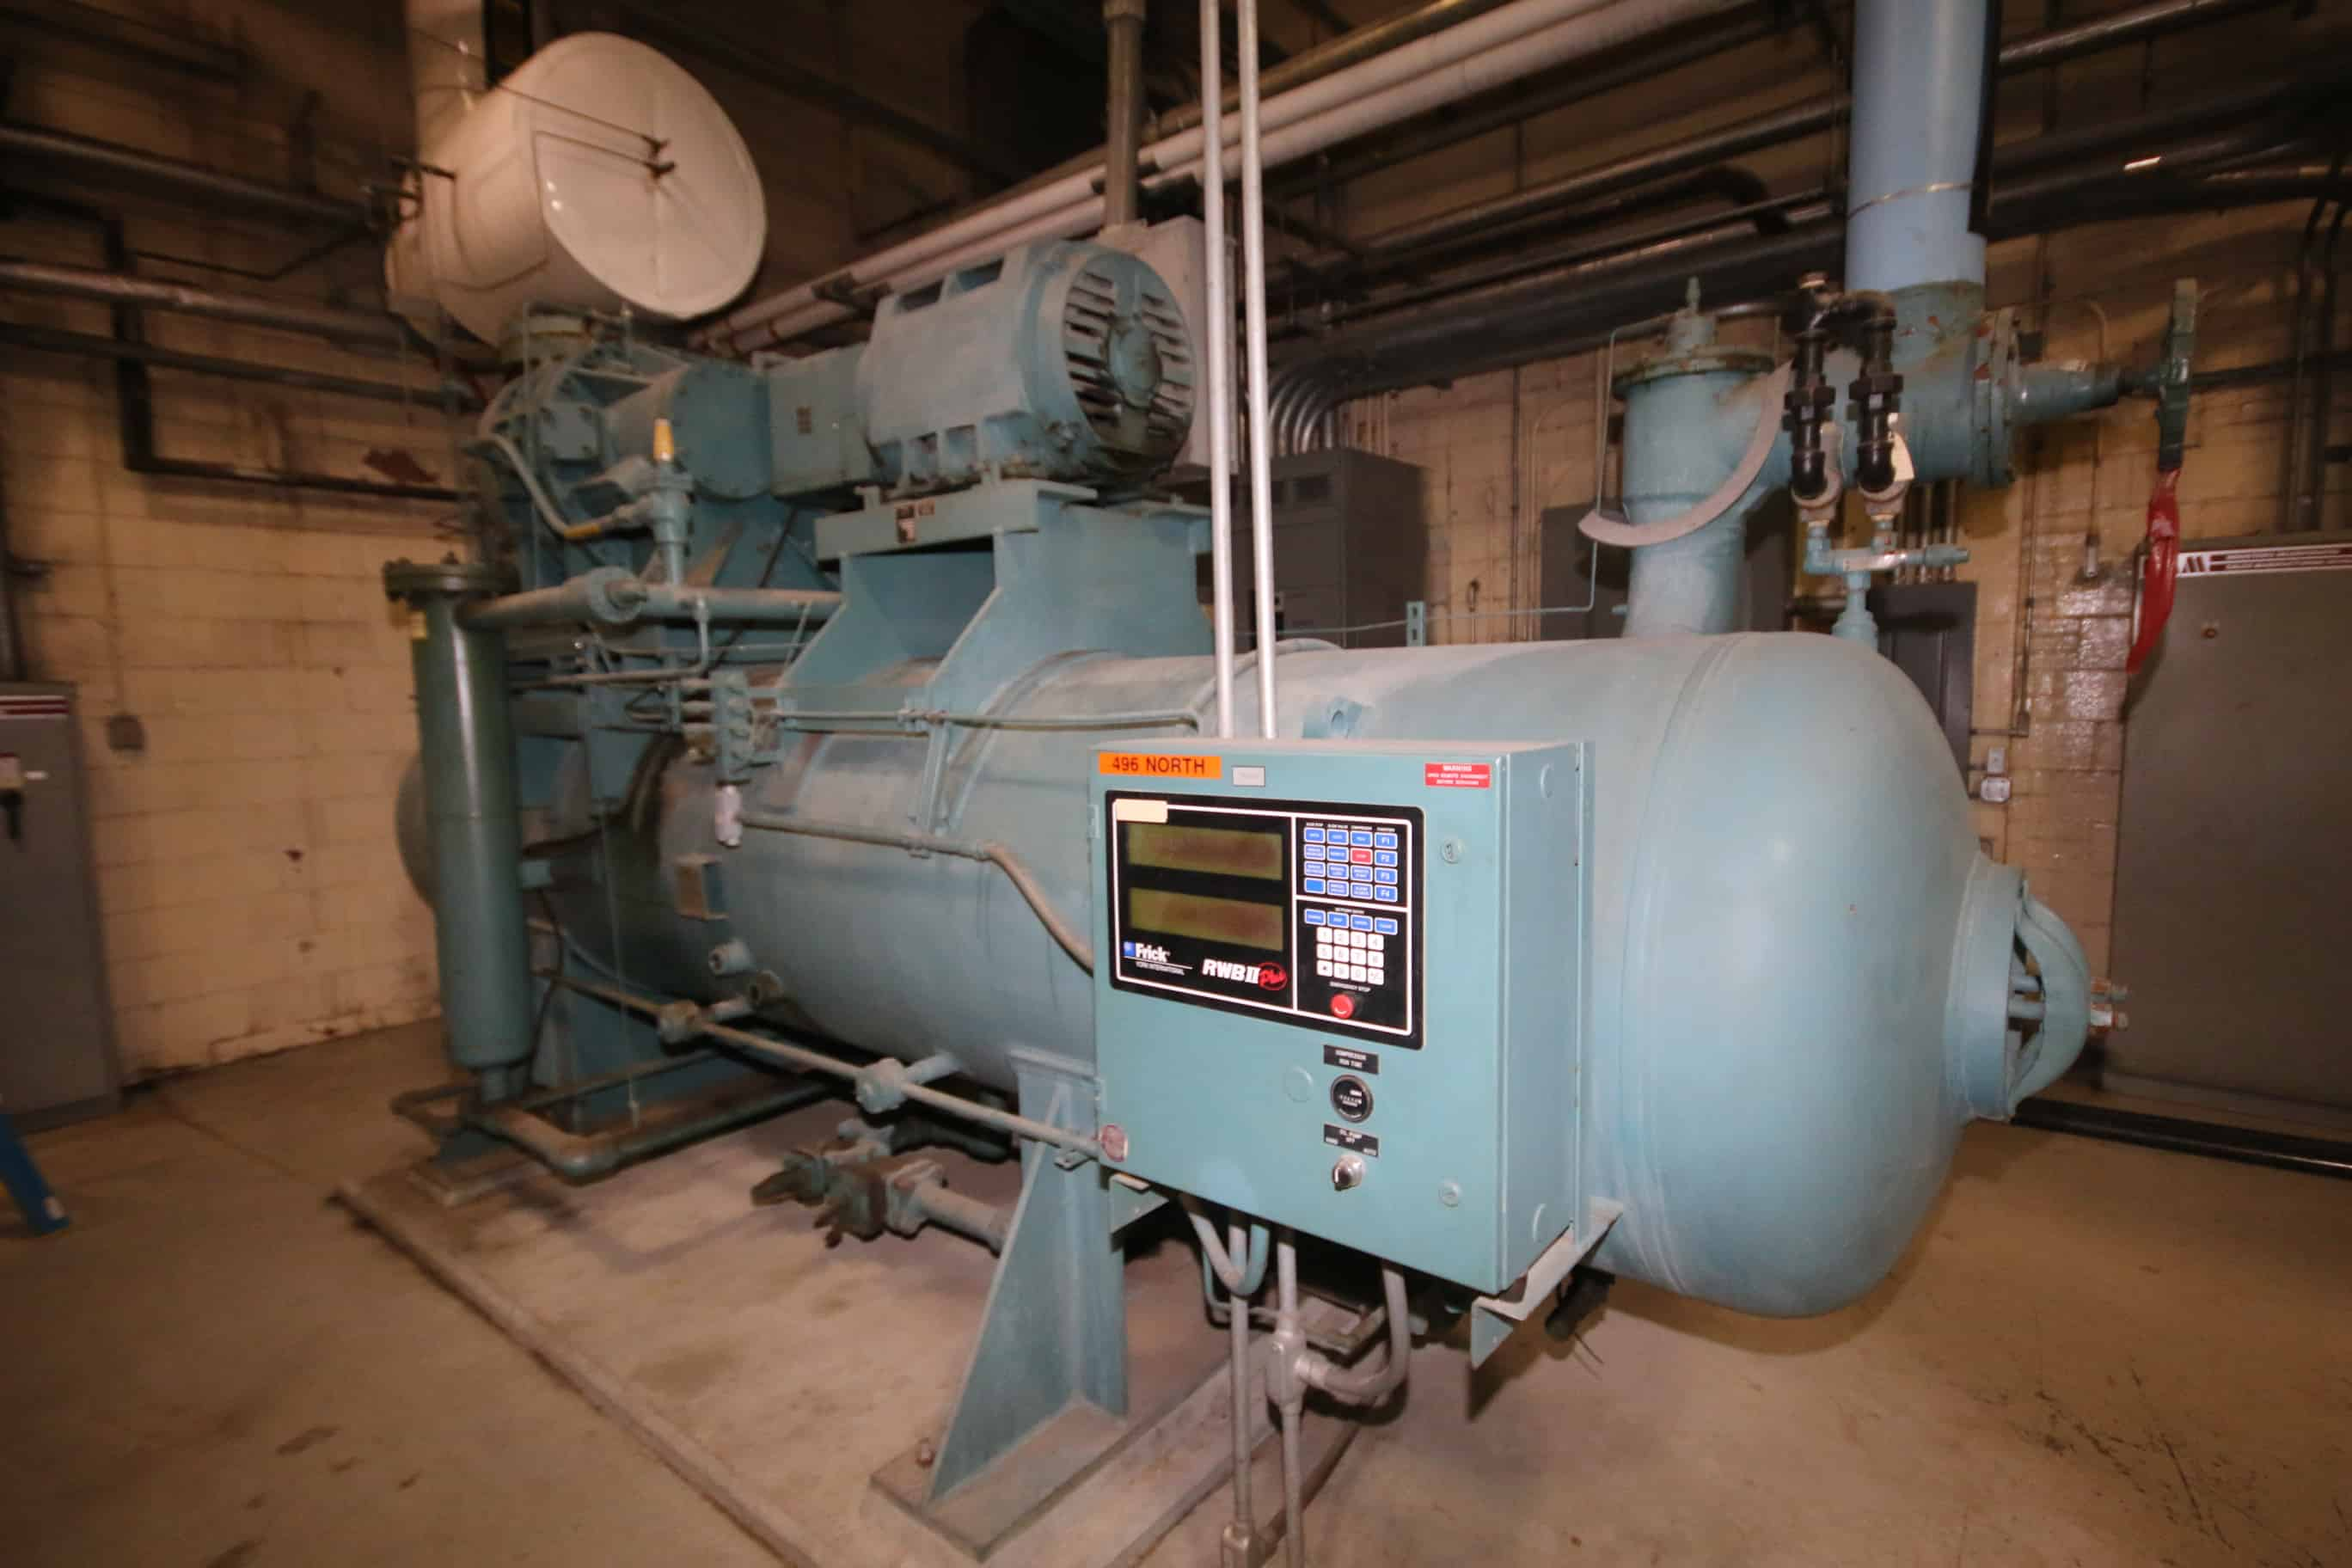 Frick 300 hp Screw Ammonia Compressor, Frame Model RWBII496B, SN S006IQFMFPHAA03, with 3570 RPM Motor, RWBII Plus Touch Screen Controls & Ram Starter, 460V 3 Phase, (Unit 496 North) Starter, 460V 3 Phase, (Unit 496 North)